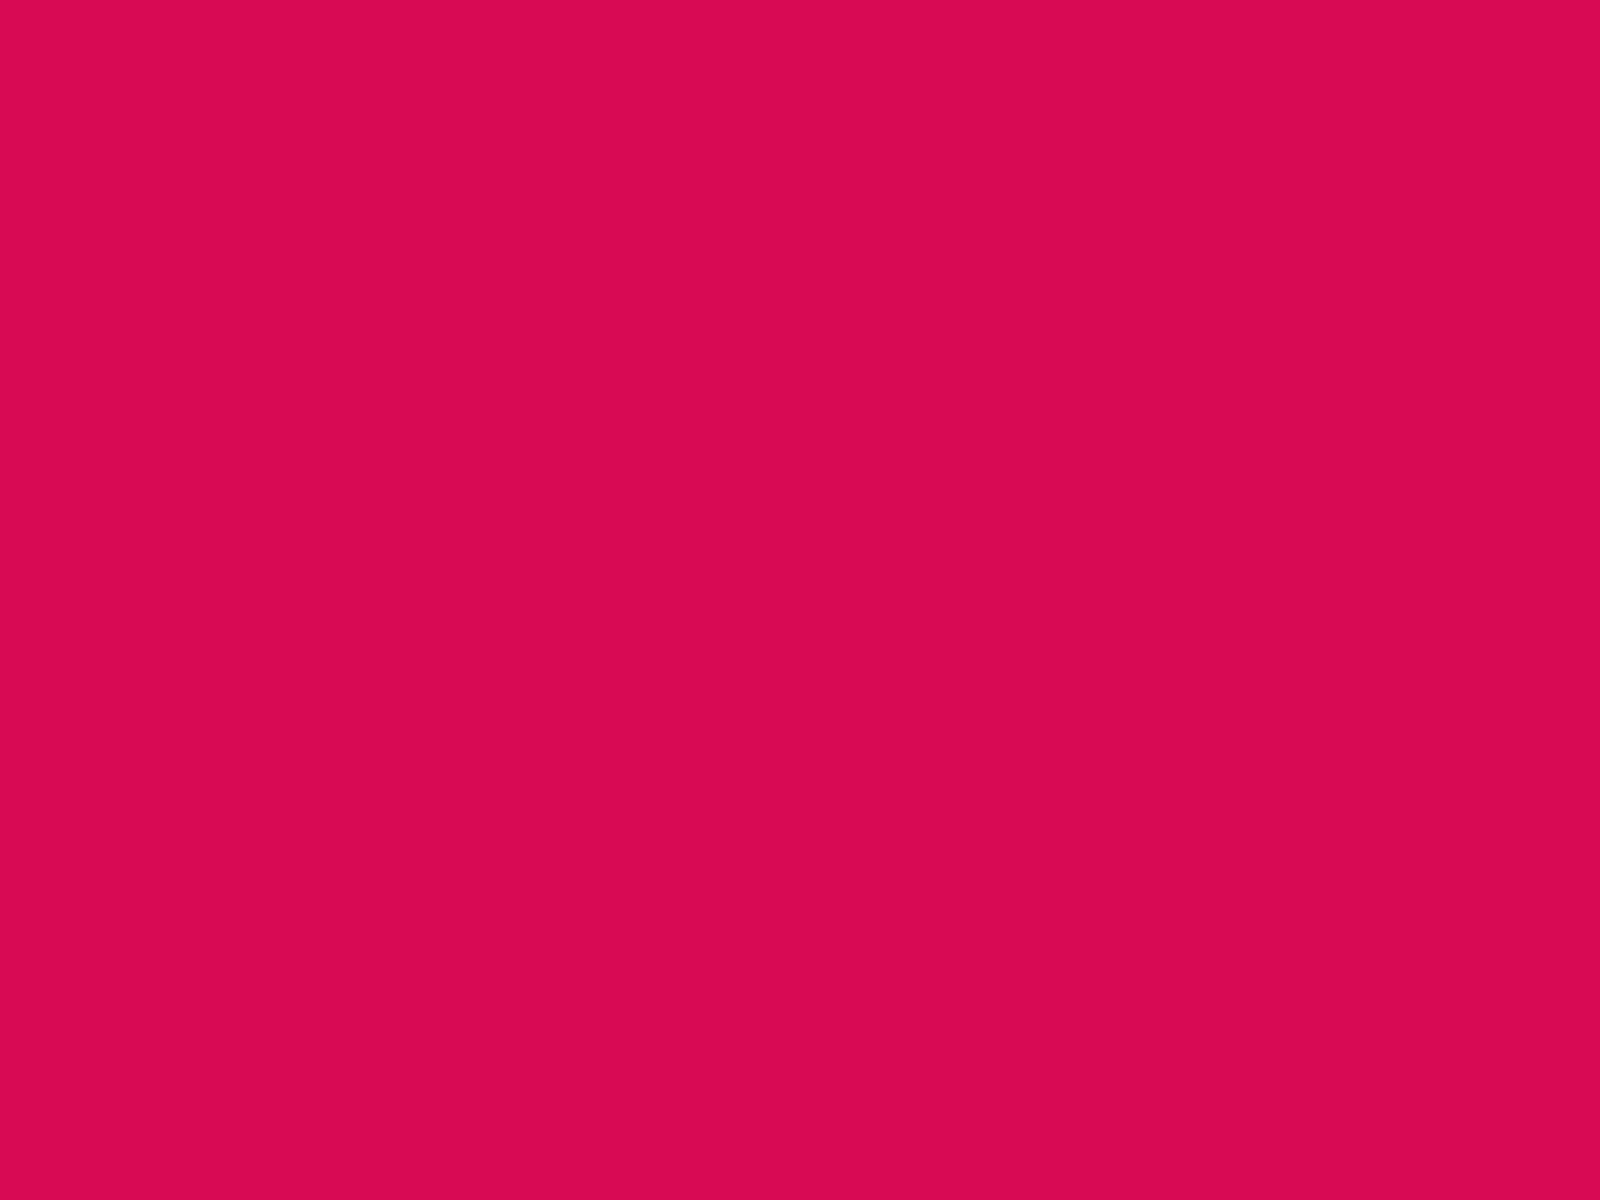 1600x1200 Debian Red Solid Color Background